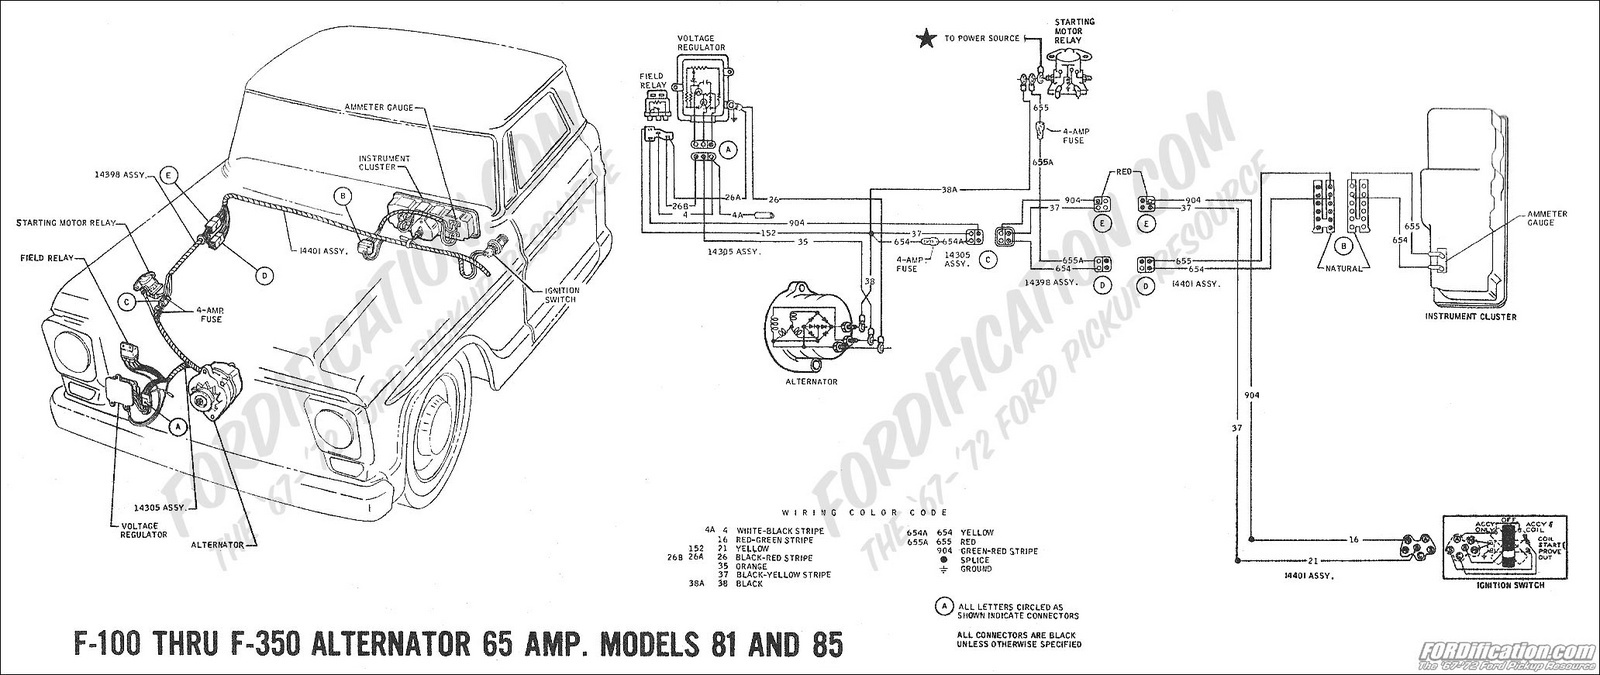 2004 Silverado Wiring Diagram Pdf from static.cargurus.com